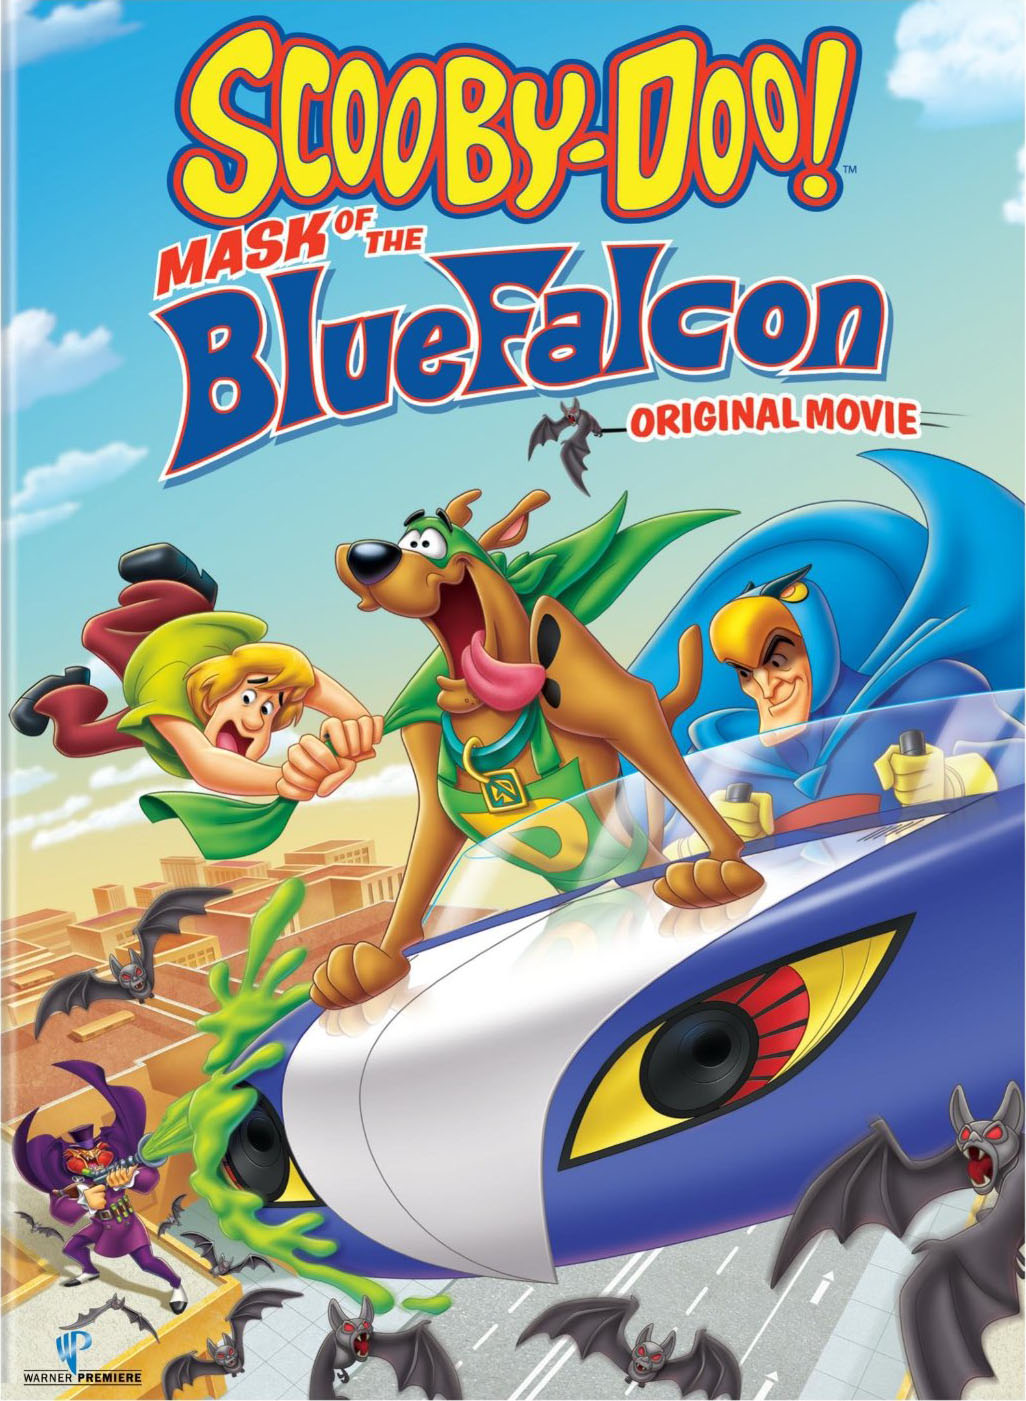 [MULTI] Scooby-Doo! Mask of the Blue Falcon [DVDRiP] [MP4]